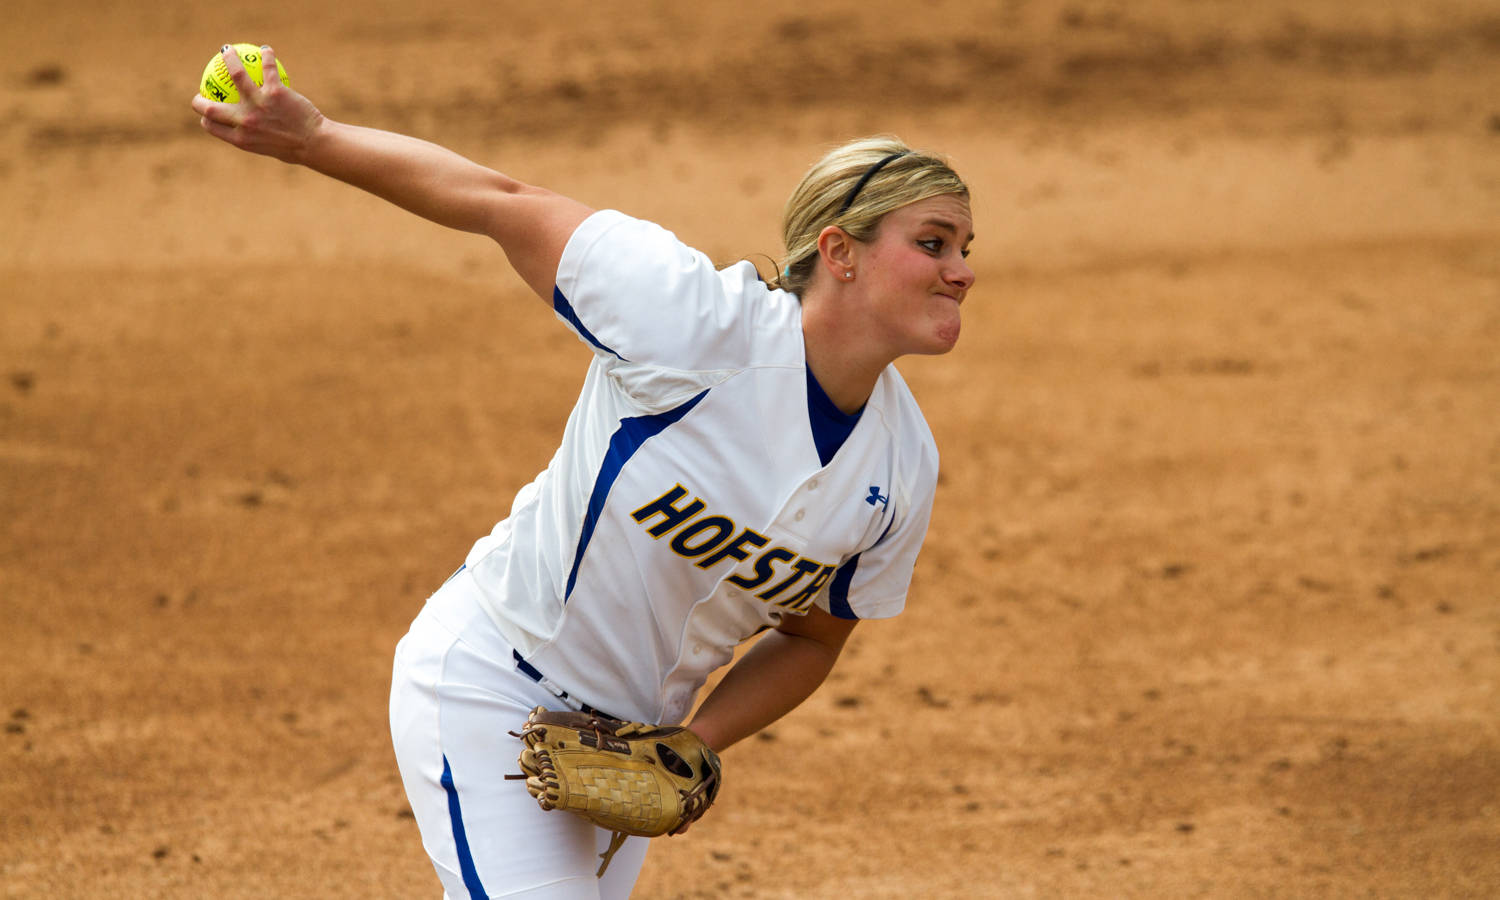 Olivia Galati of the Hofstra Softball Team was named to the Academic All-American Team